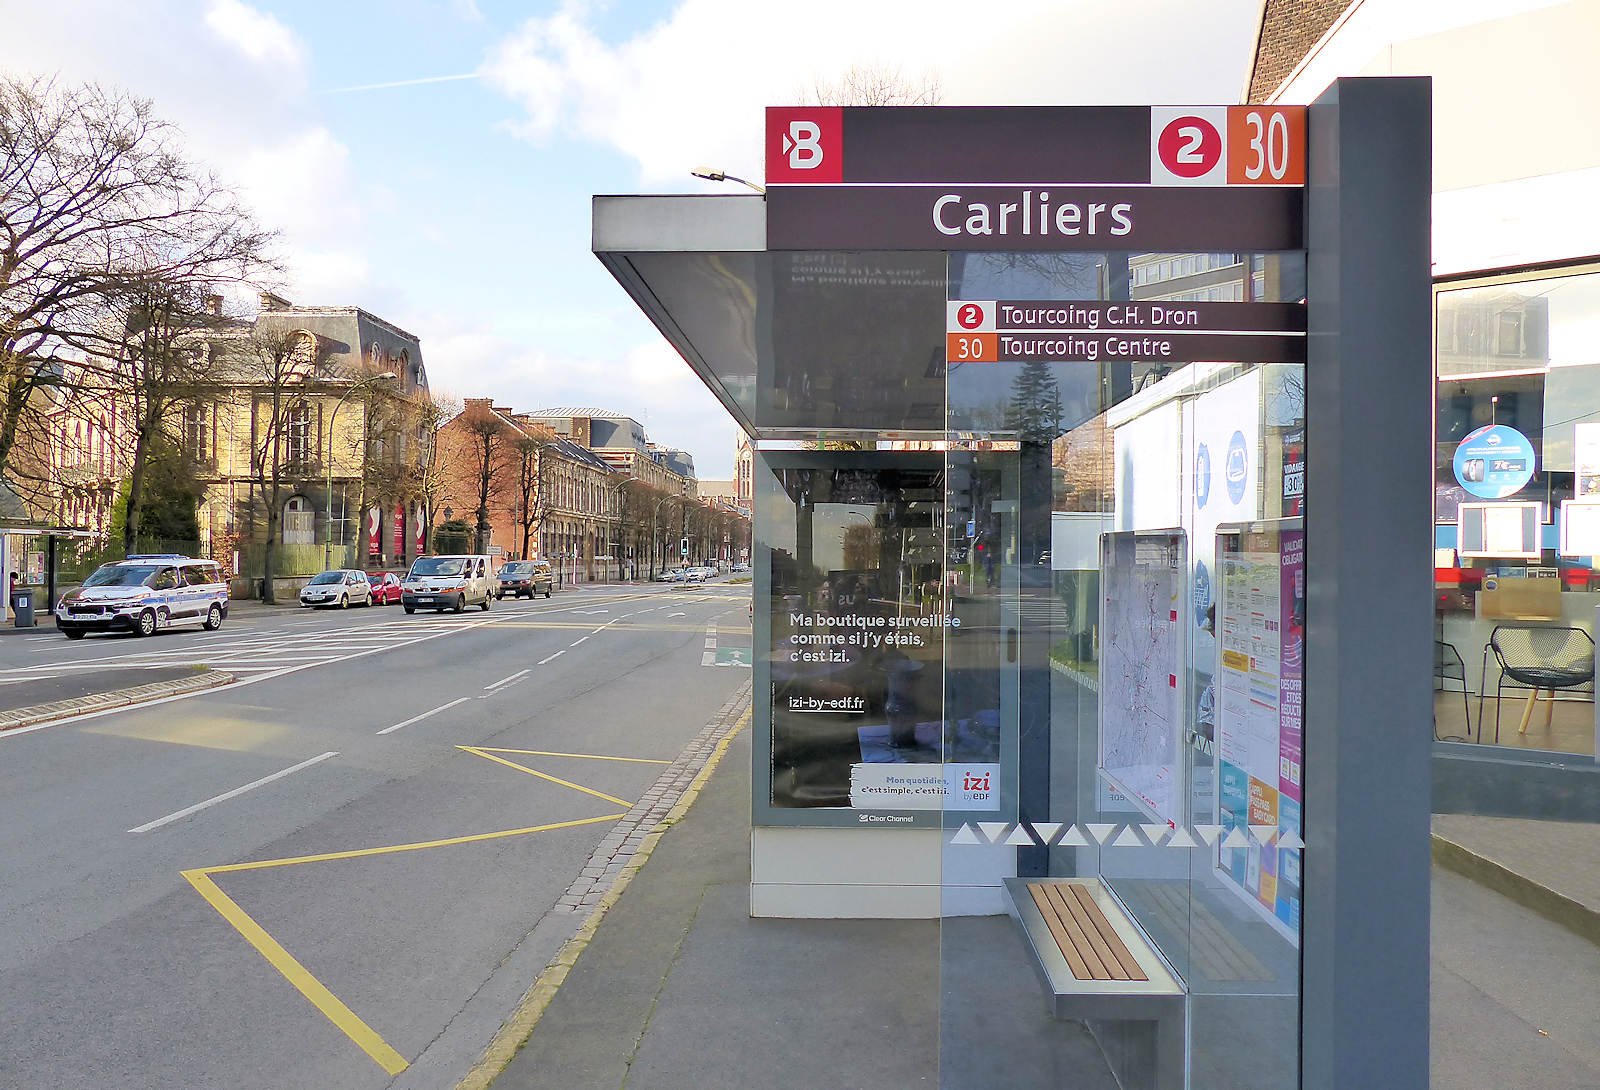 Bus Tourcoing - Carliers, ligne 2, 30